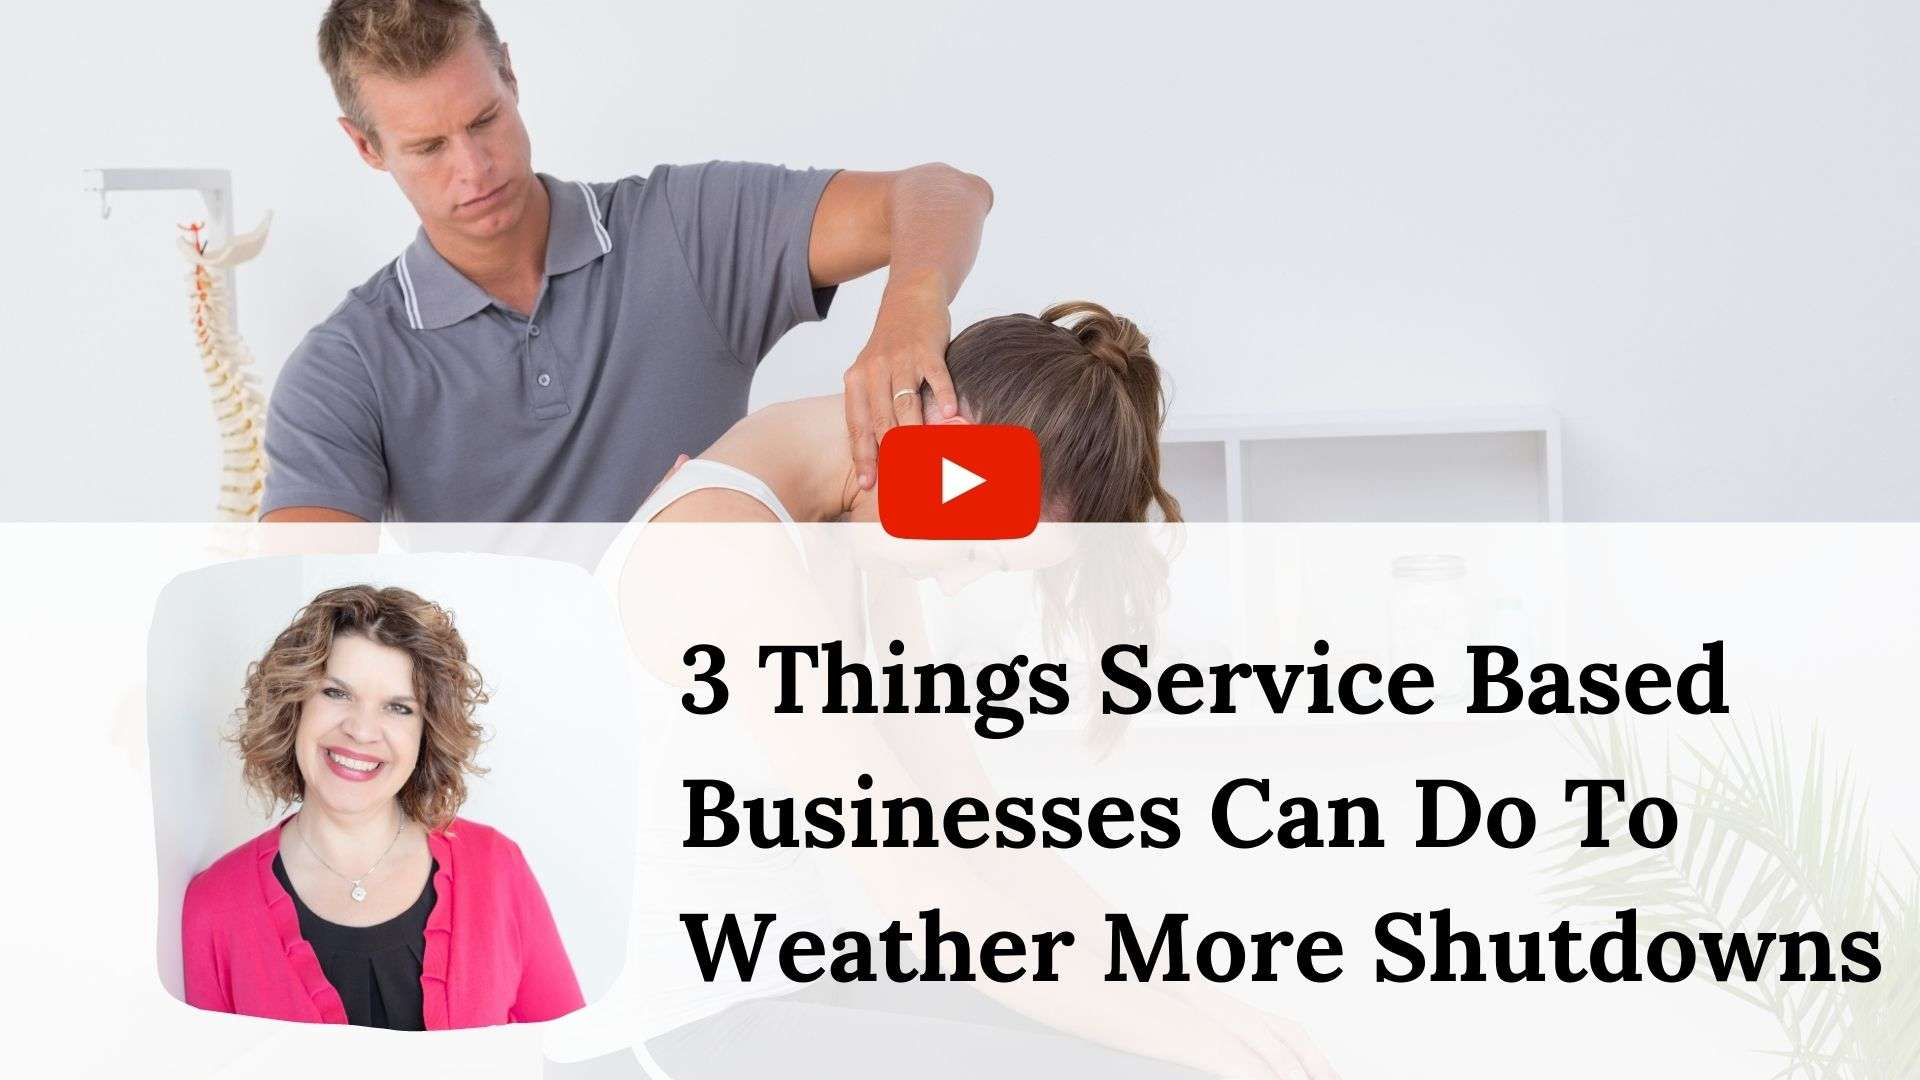 ACCTV #5 – 3 Things Service-Based Businesses Can Do To Weather More Shutdowns